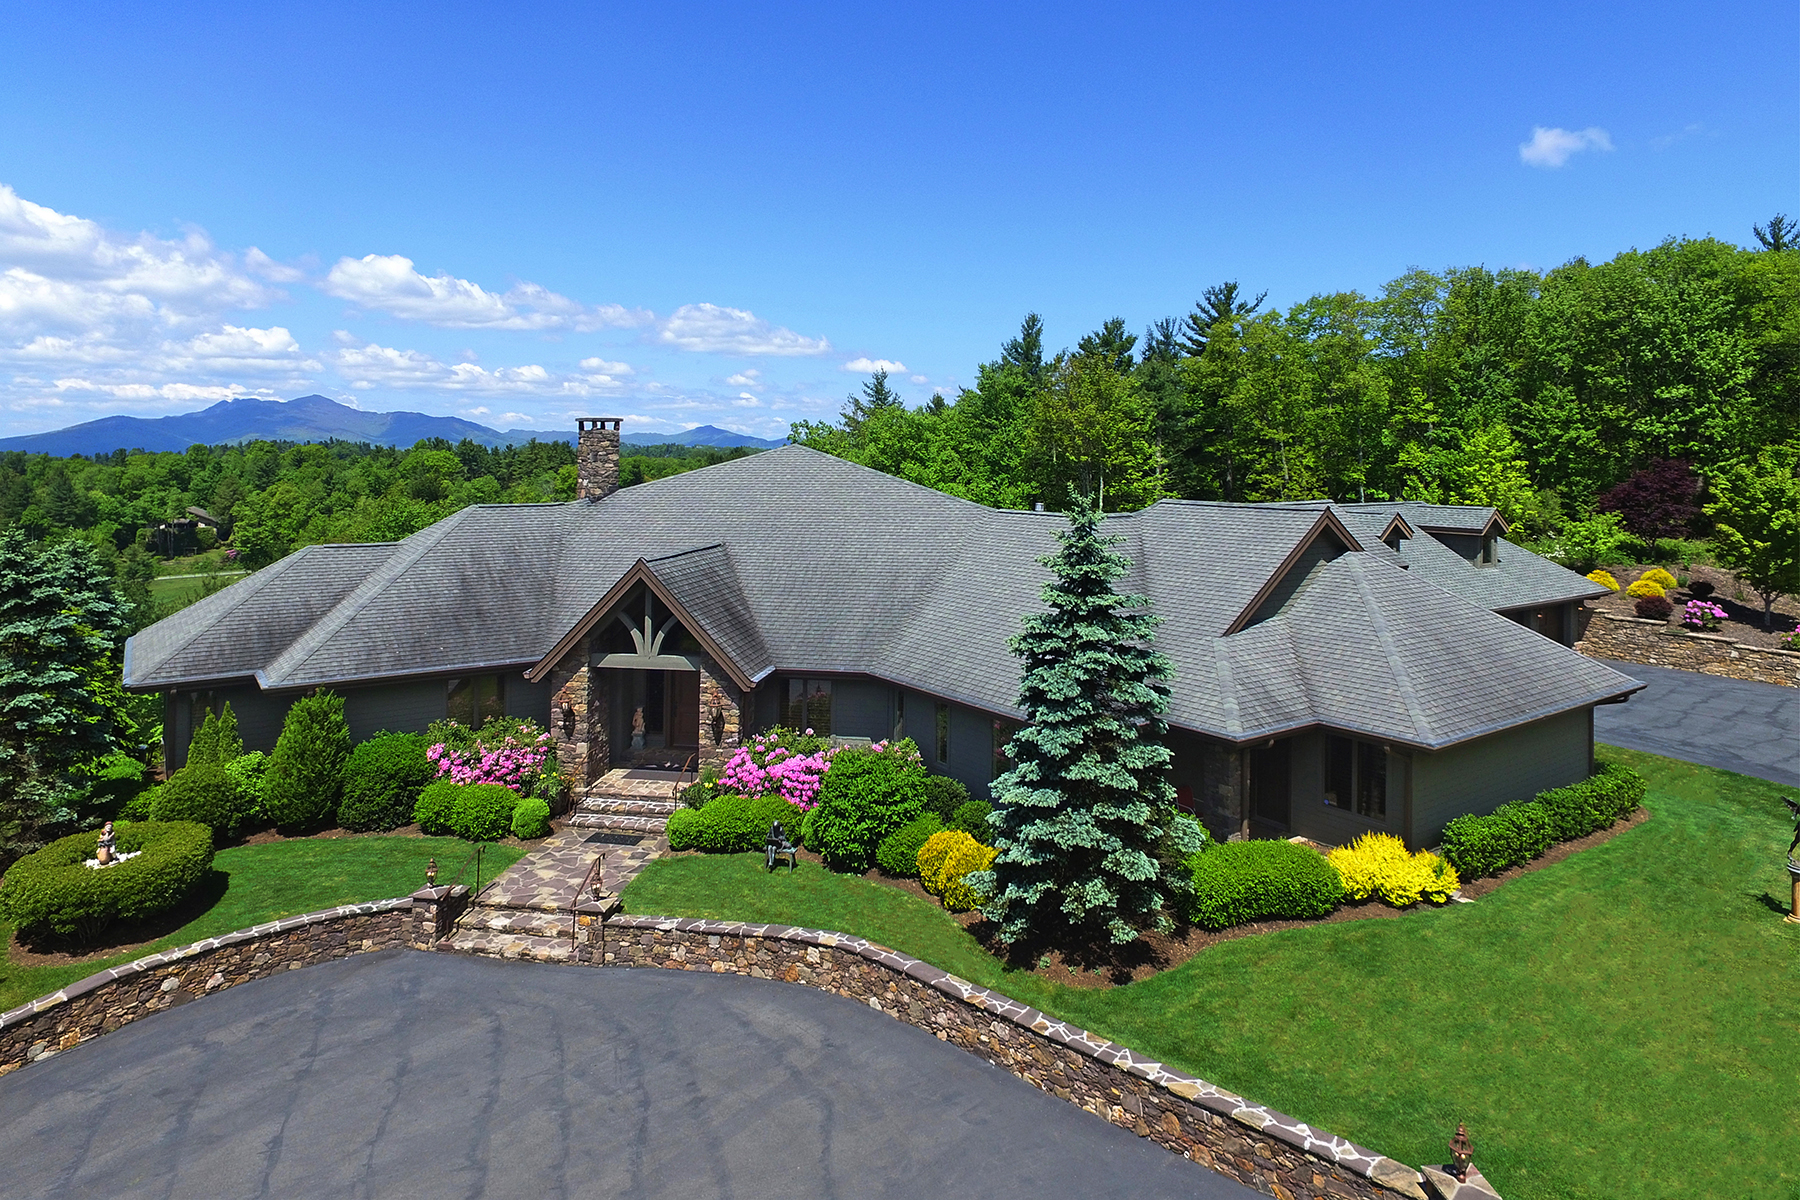 Single Family Home for Sale at BLOWING ROCK 375 Wonderland Drive Dr Blowing Rock, North Carolina, 28605 United States